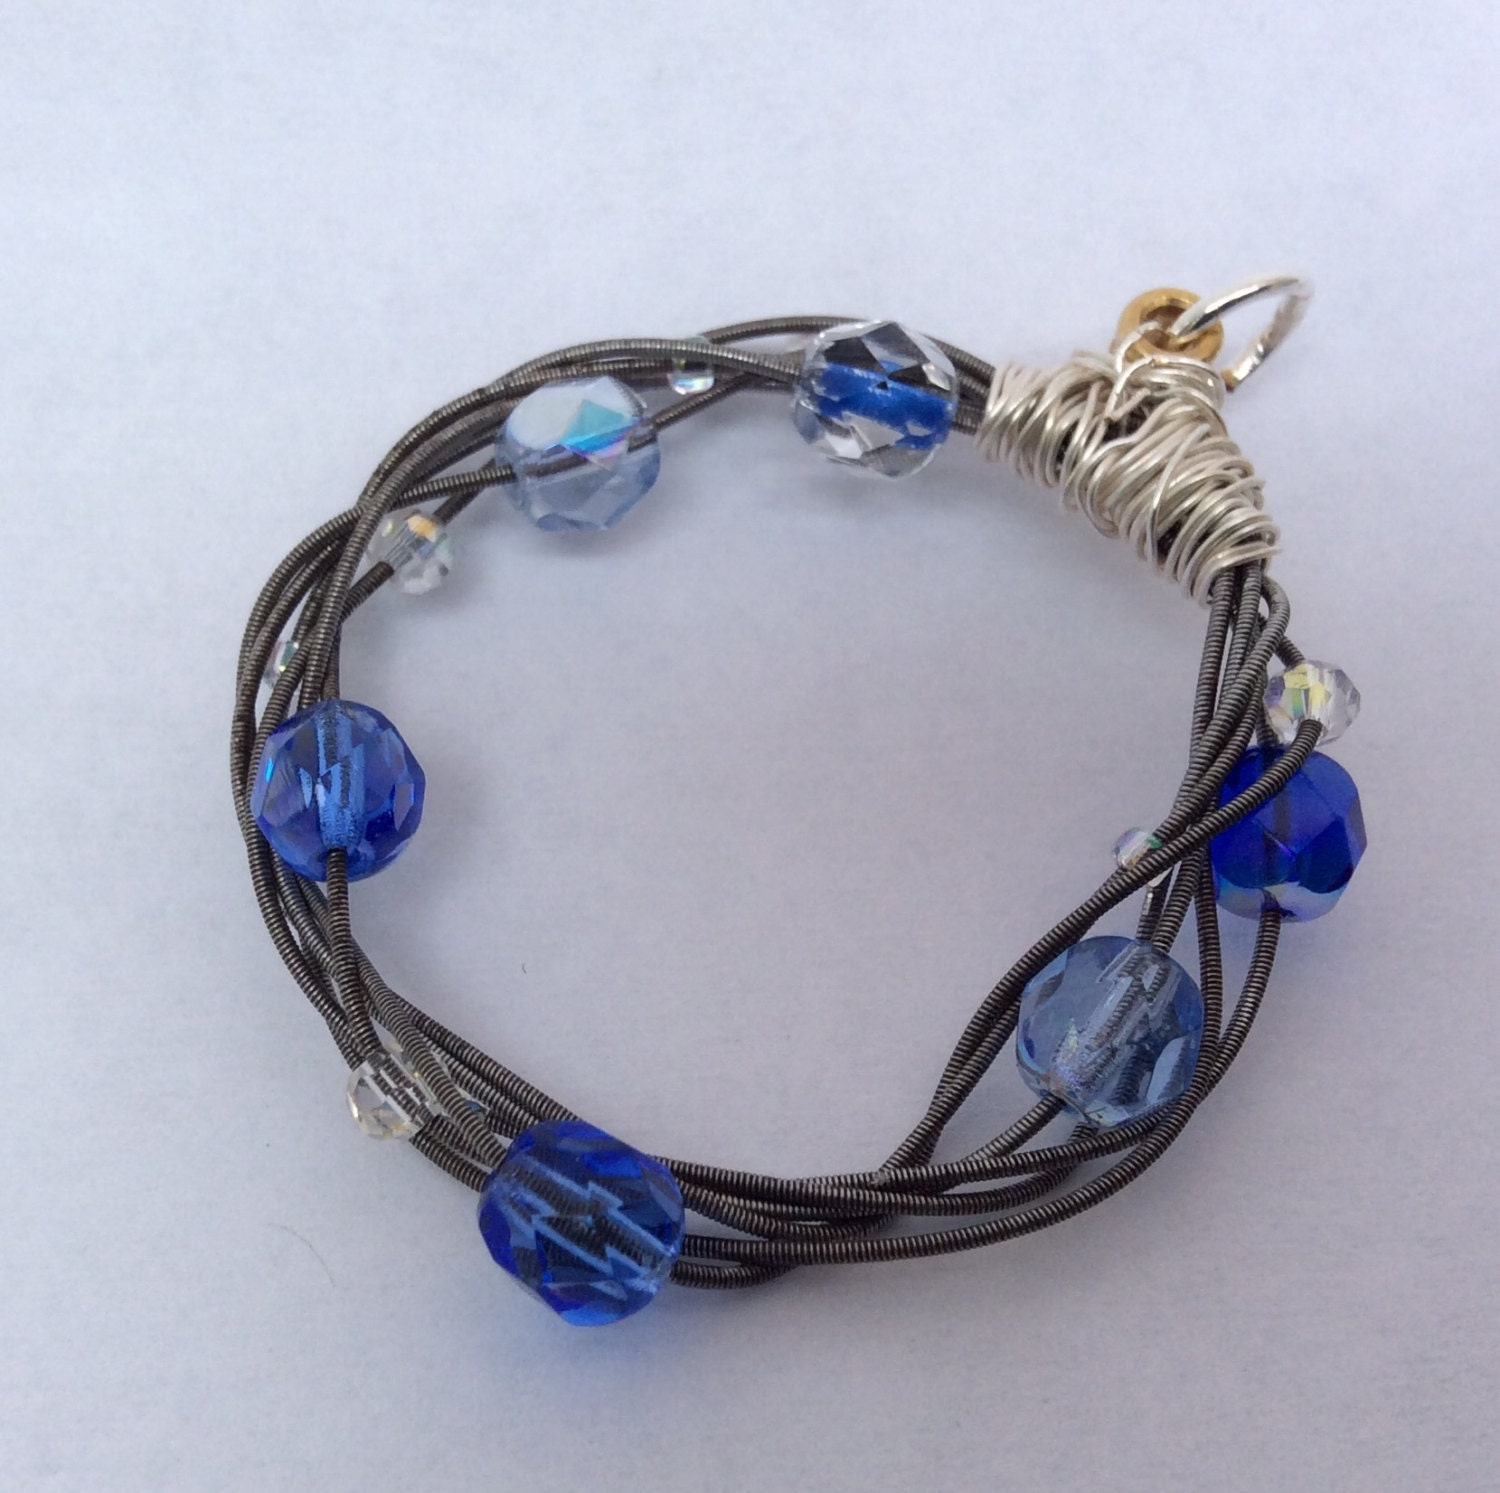 guitar string jewelry recycled blue and clear crystal. Black Bedroom Furniture Sets. Home Design Ideas